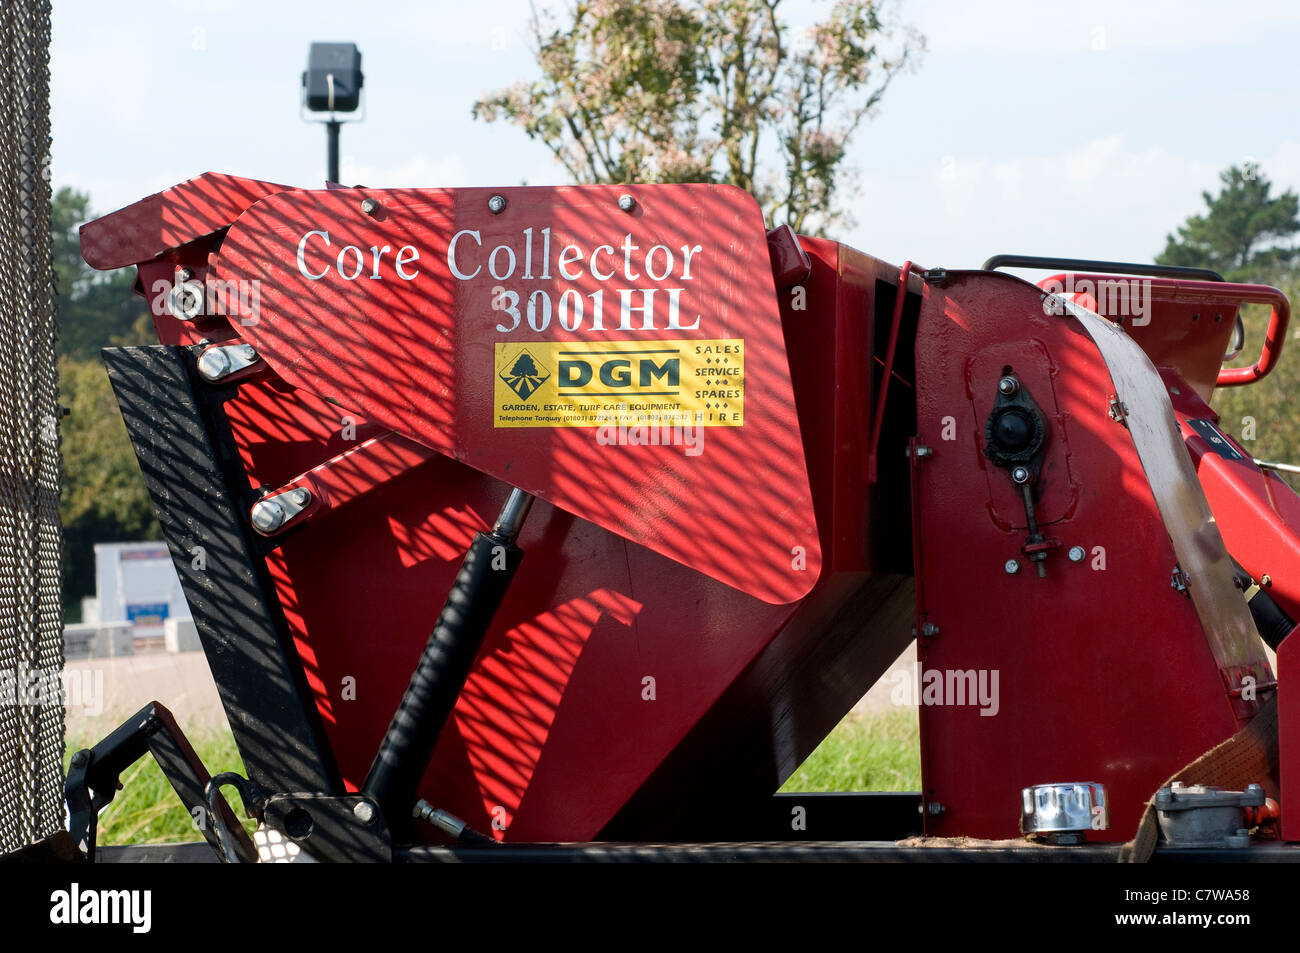 Core collector,  Groundsman Industries specialize in the design and manufacture of Turf maintenance Machinery - Stock Image